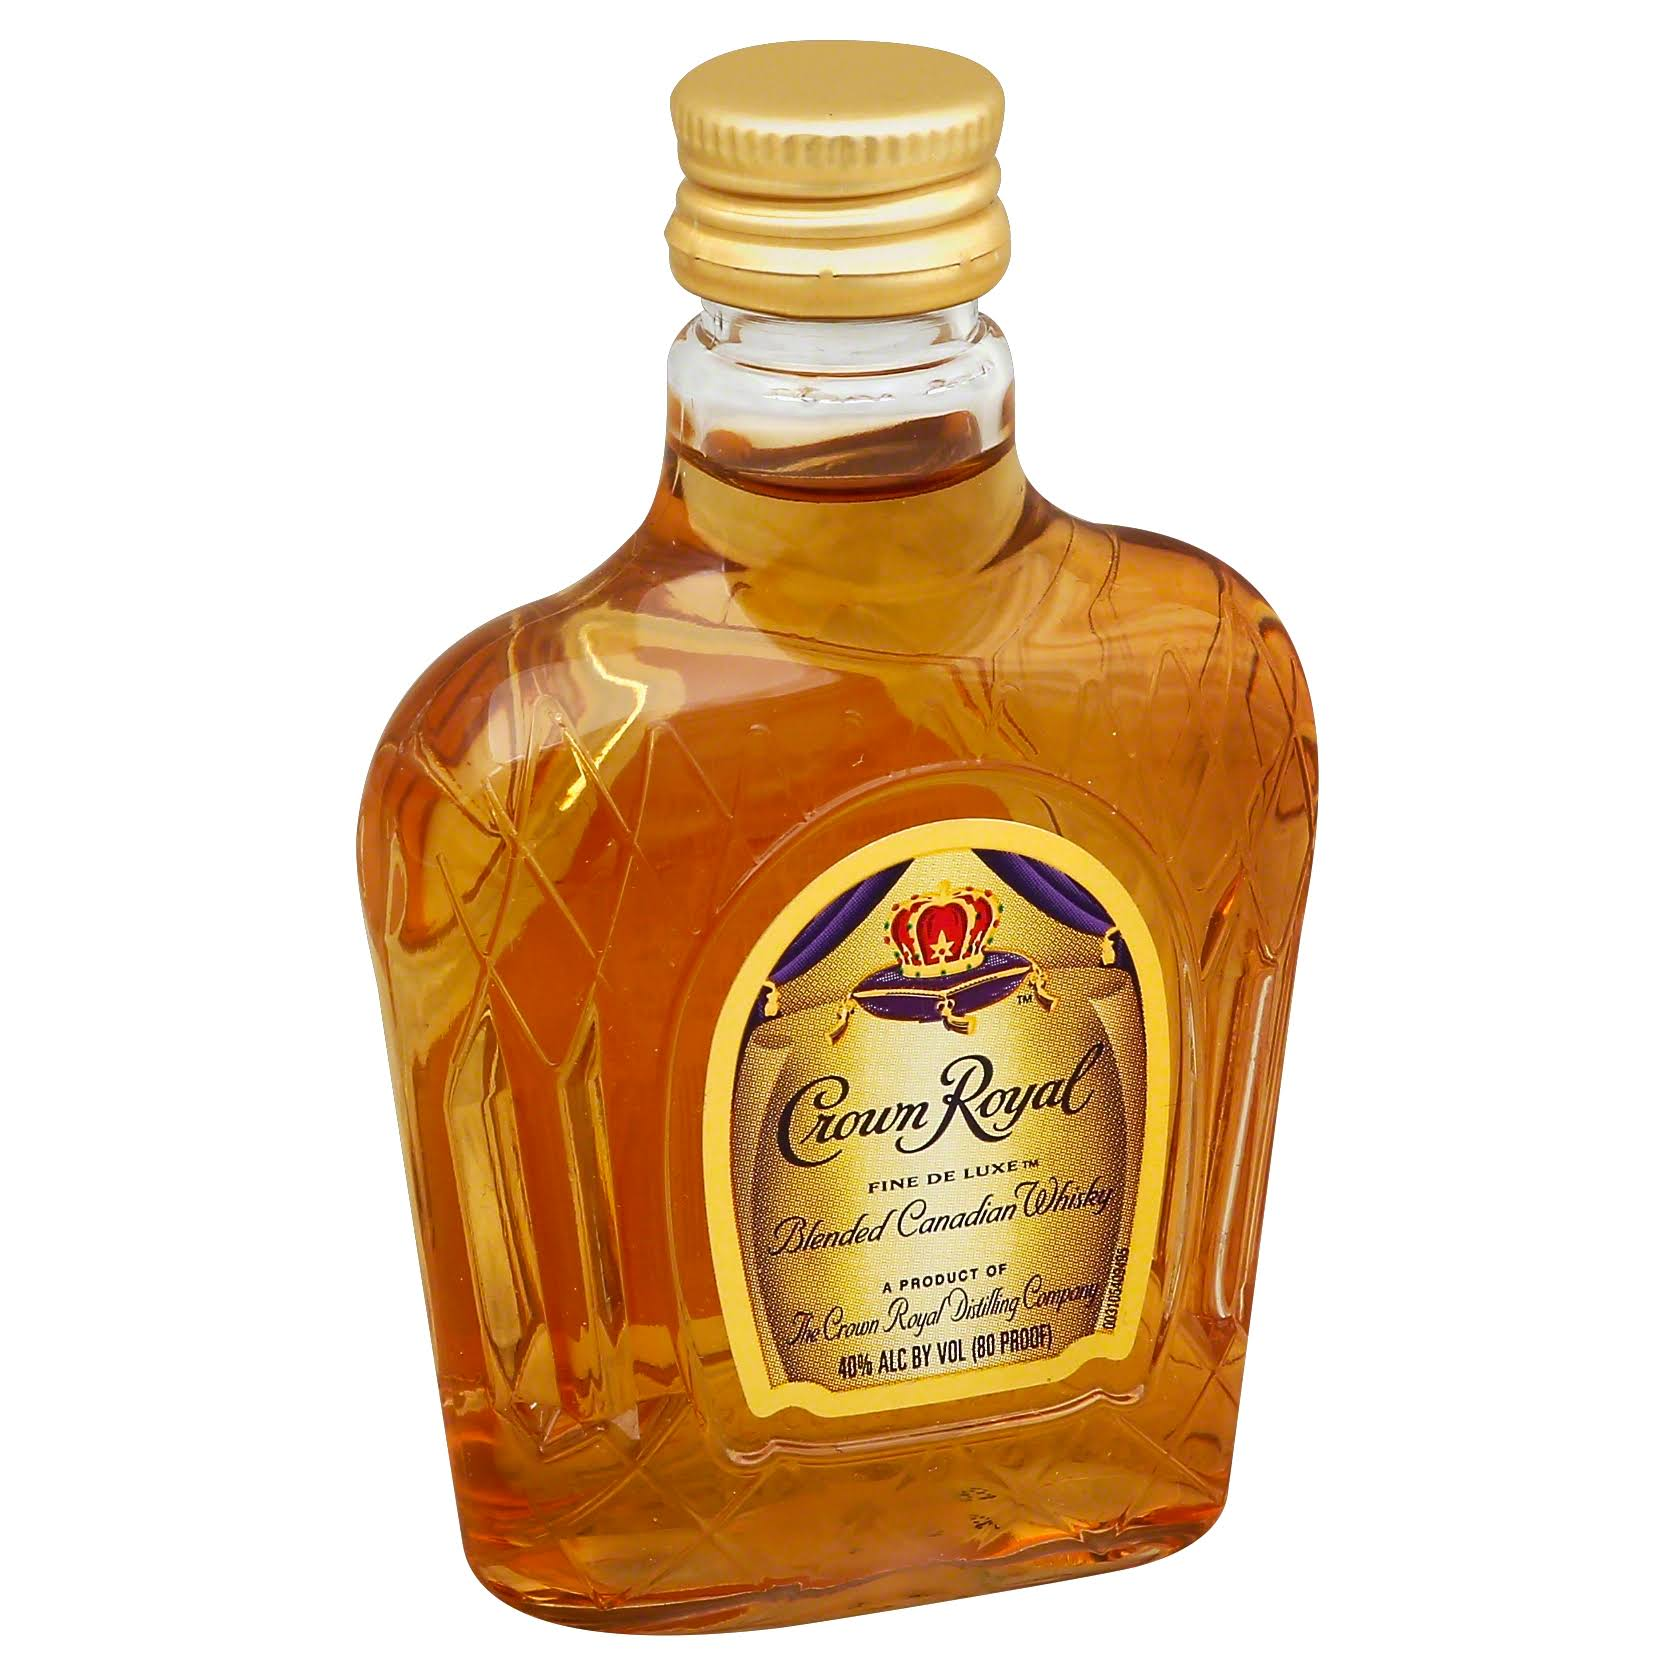 Crown Royal Canadian Whisky - 50 ml bottle